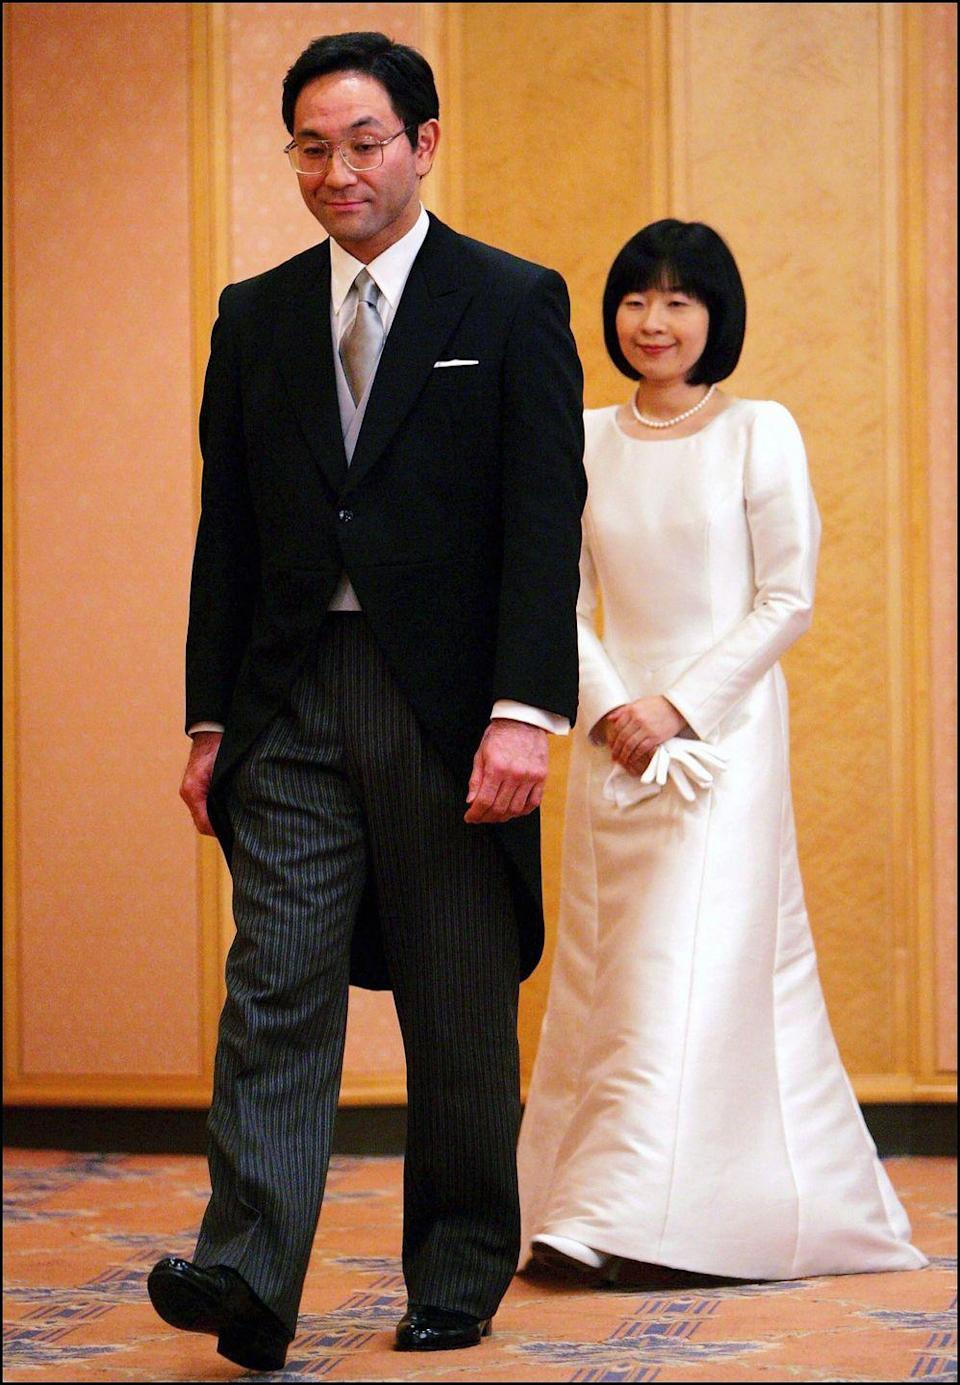 <p>Technically, this one is not a royal wedding as Princess Nori of Japan <em>left behind</em> the world's oldest hereditary monarchy to marry commoner Yoshiki Kuroda, a government official she met as a child. The only daughter of Emperor Akihito, the princess is now Mrs. Sayako Kuroda and lives in a rented Tokyo apartment. For her wedding day, she wore a brilliantly minimalist, A-line dress with satin gloves and a pearl necklace. </p>